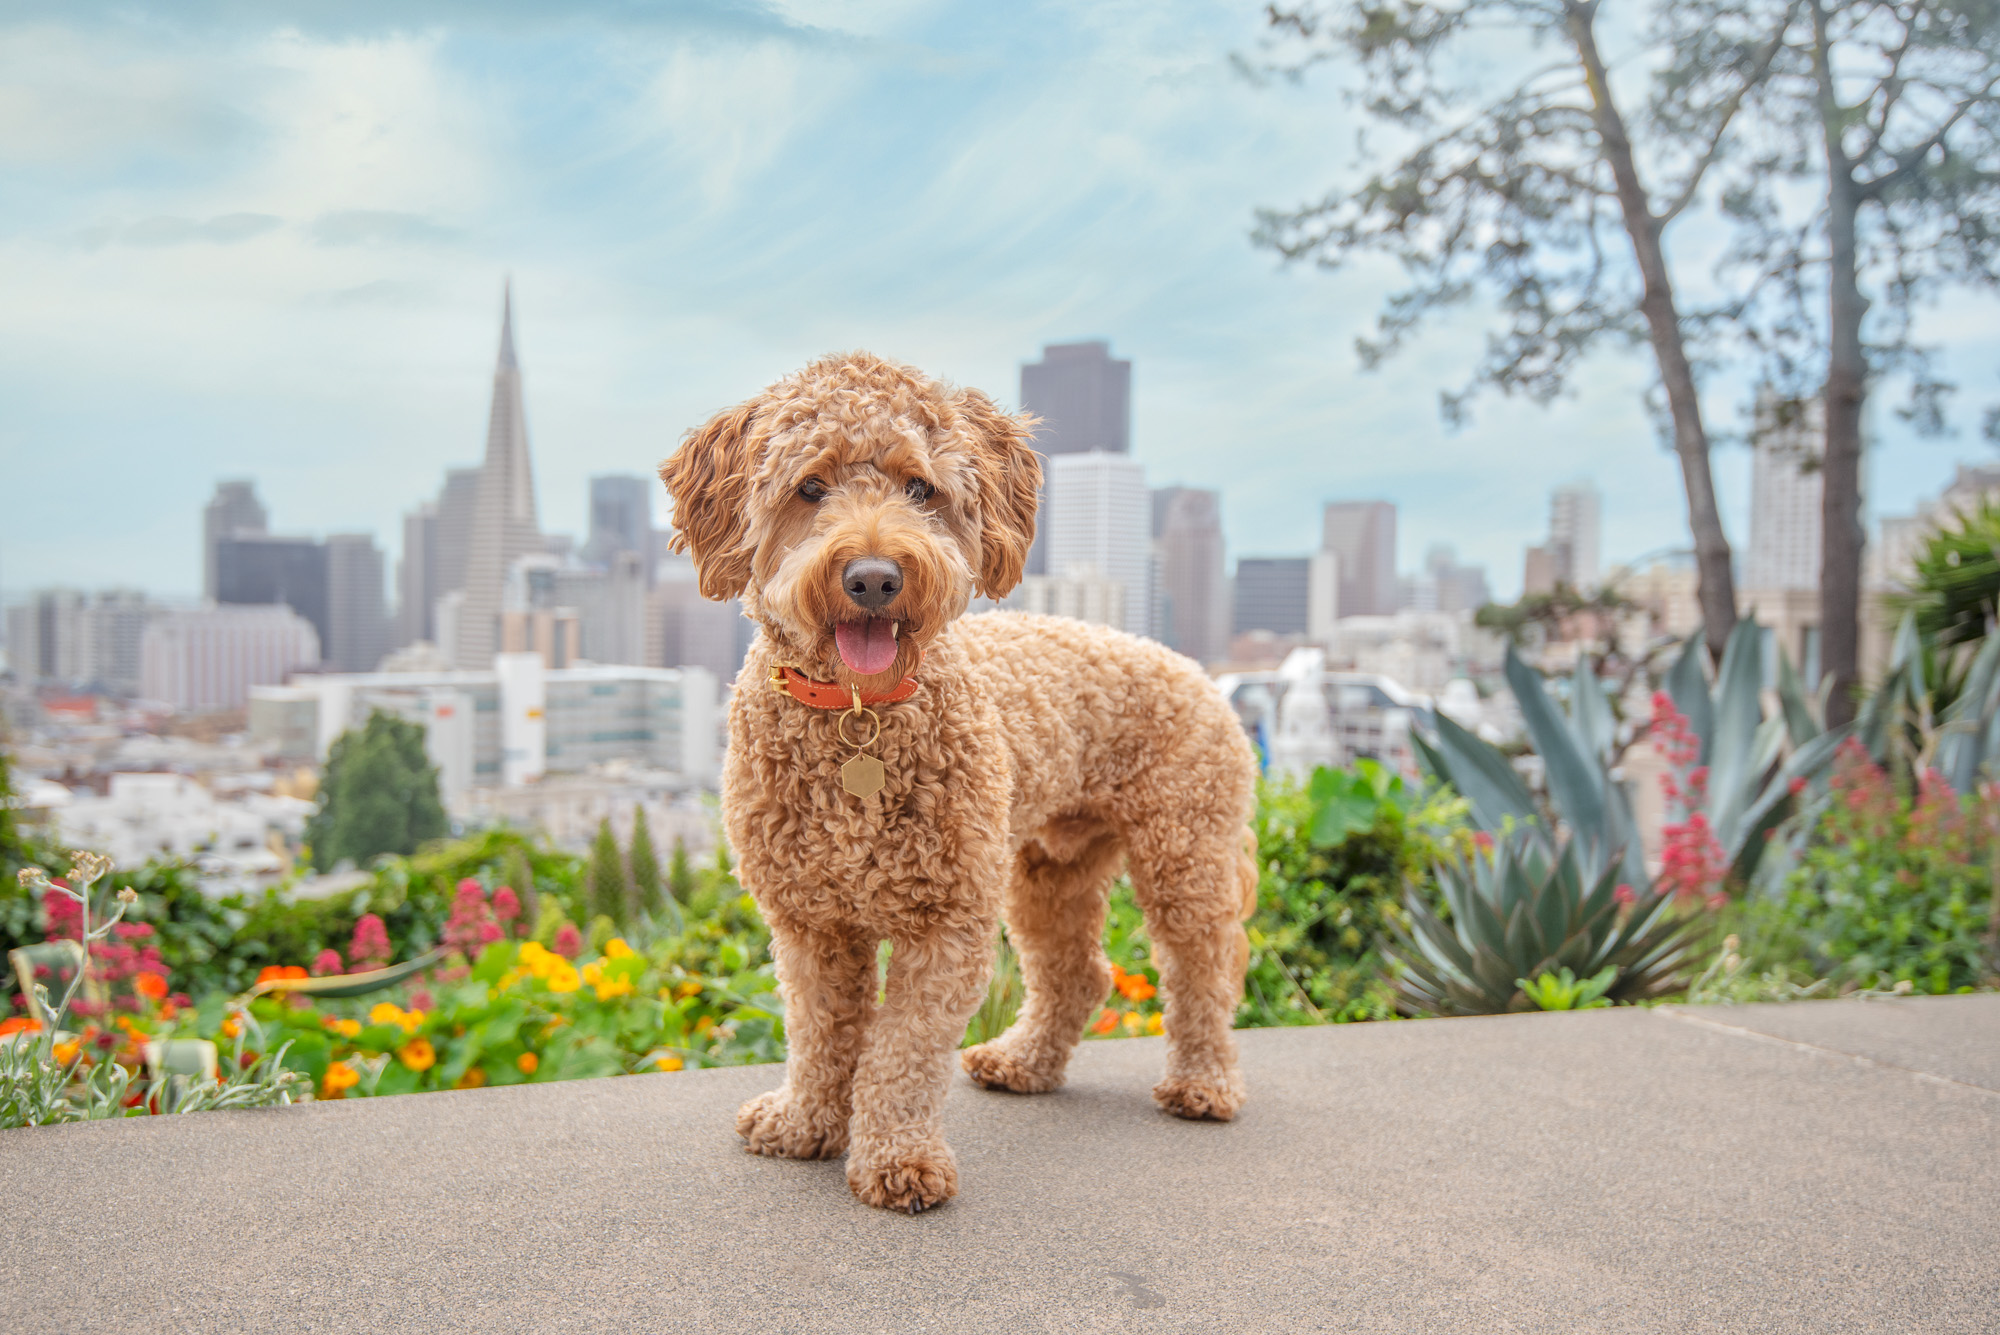 dog in San Francisco park overlooking the skyline